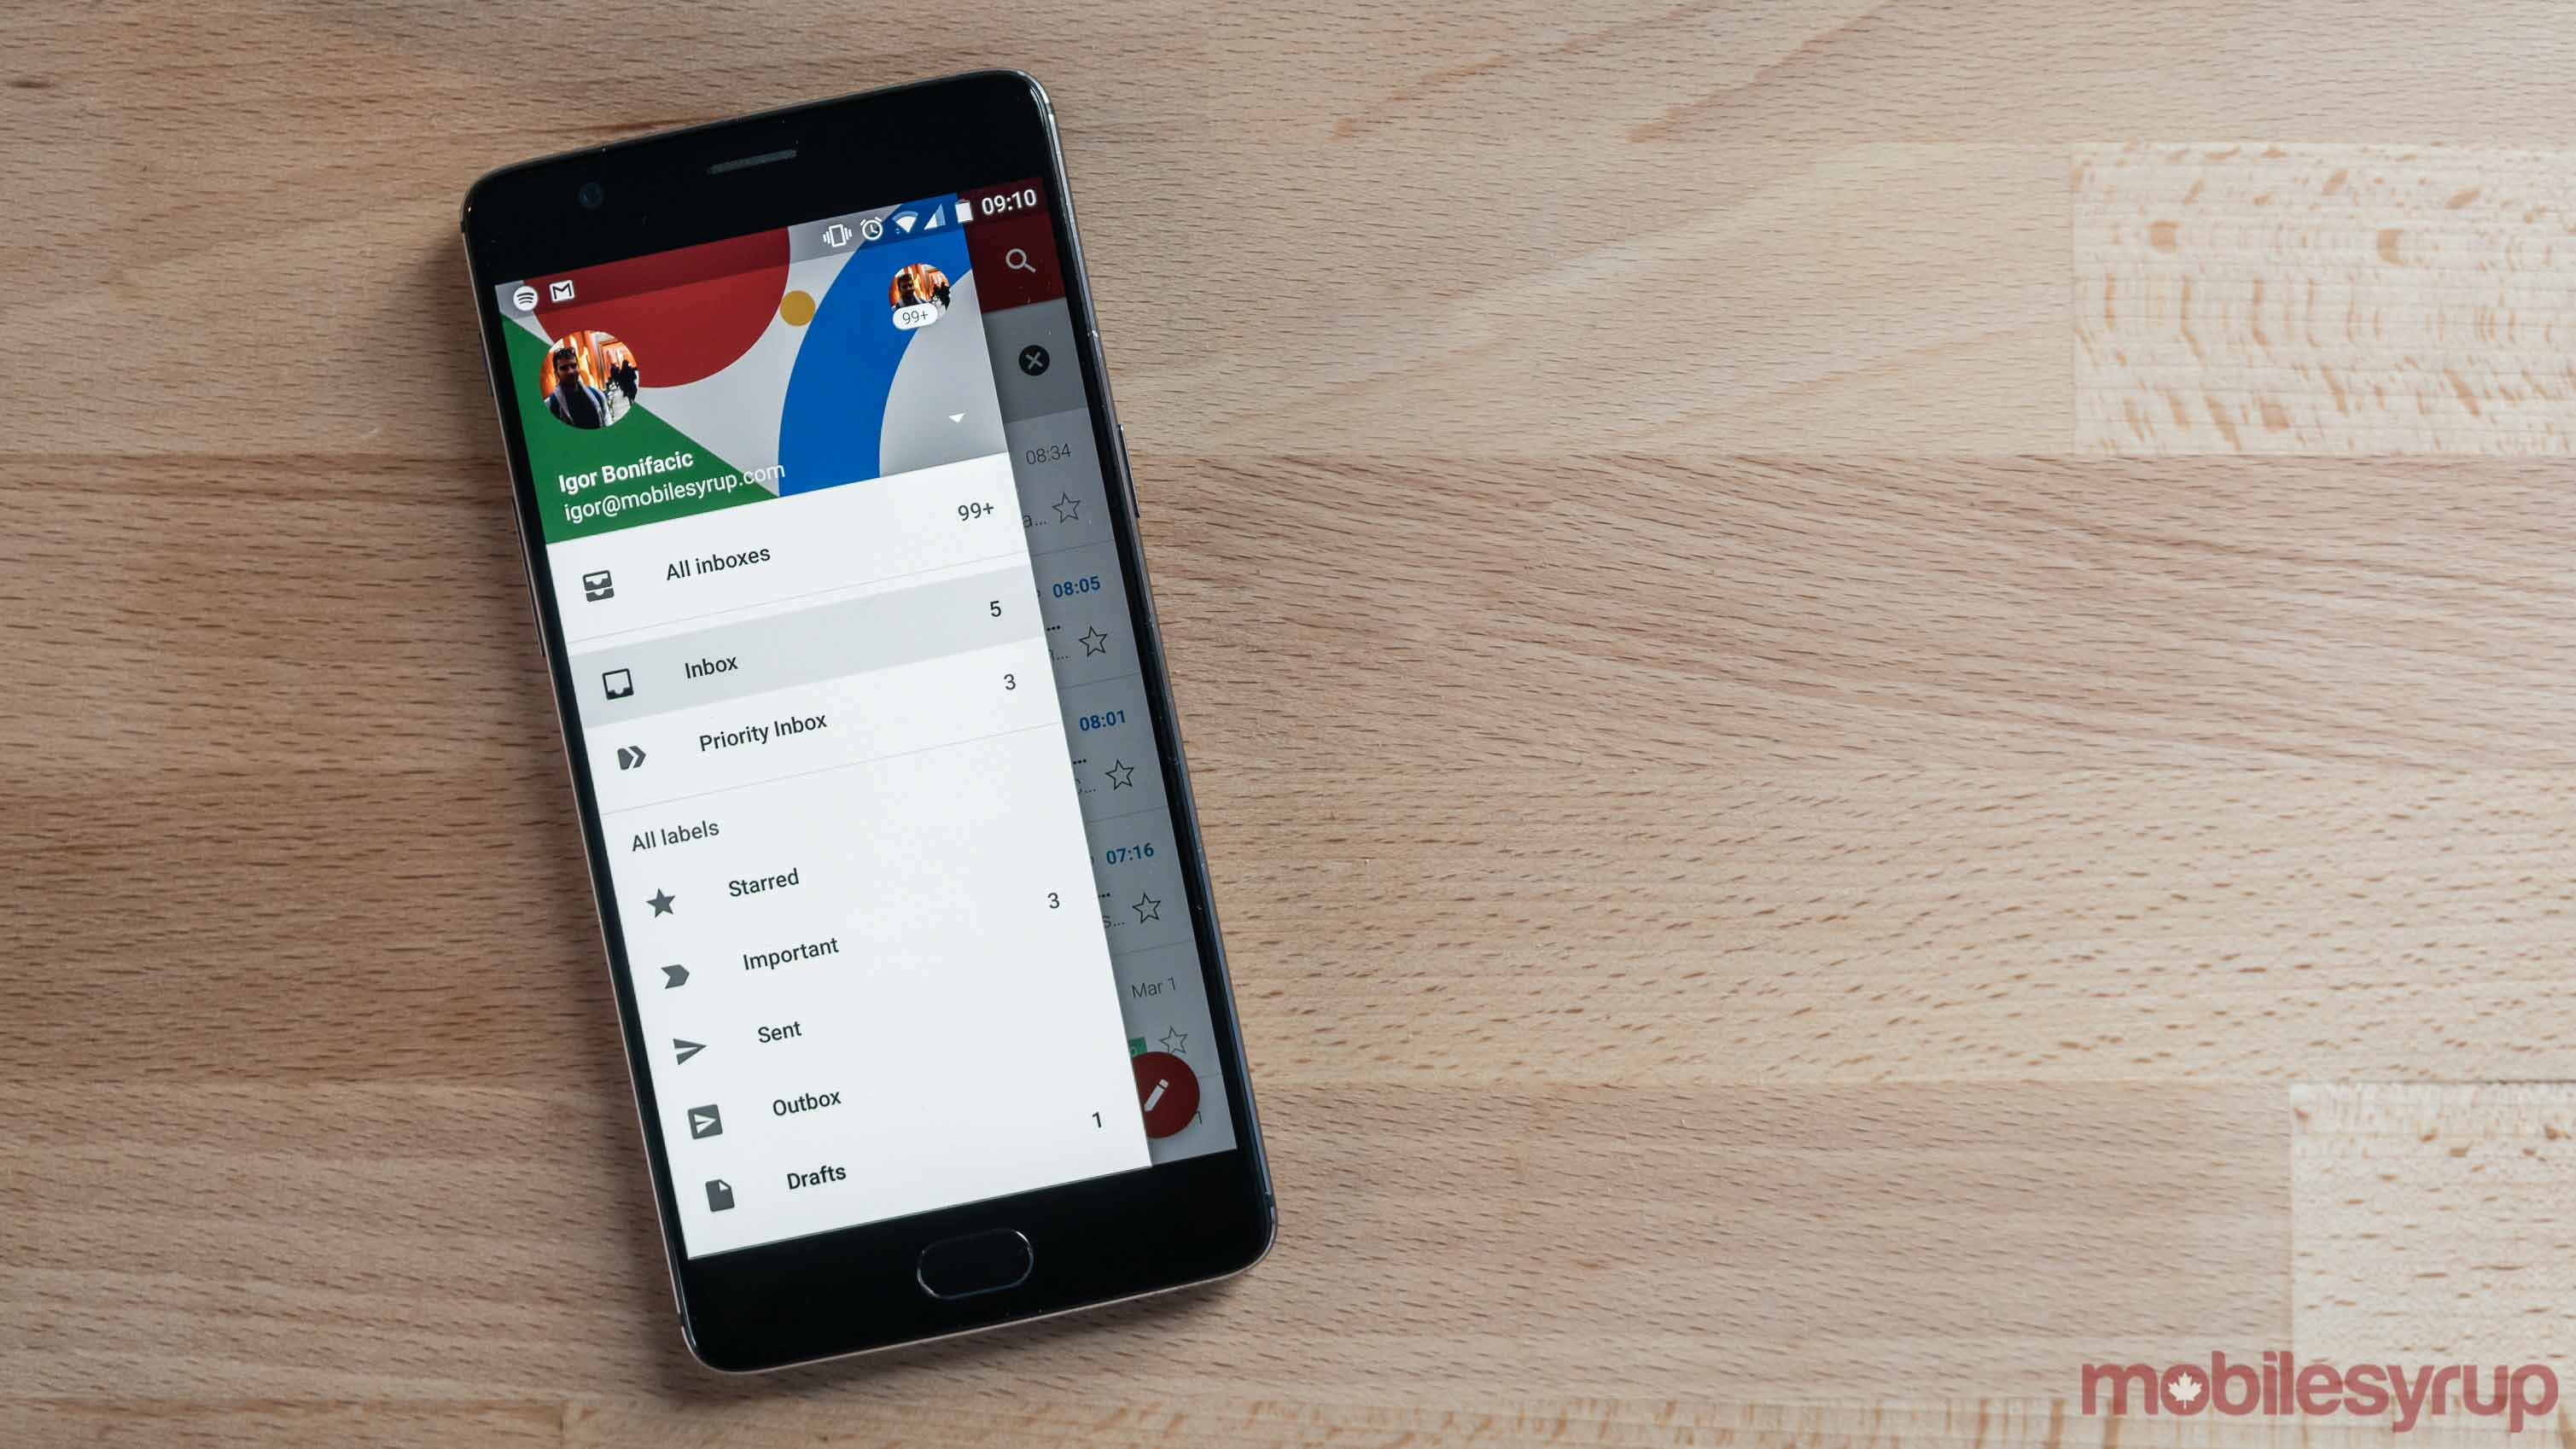 Gmail app on Android phone